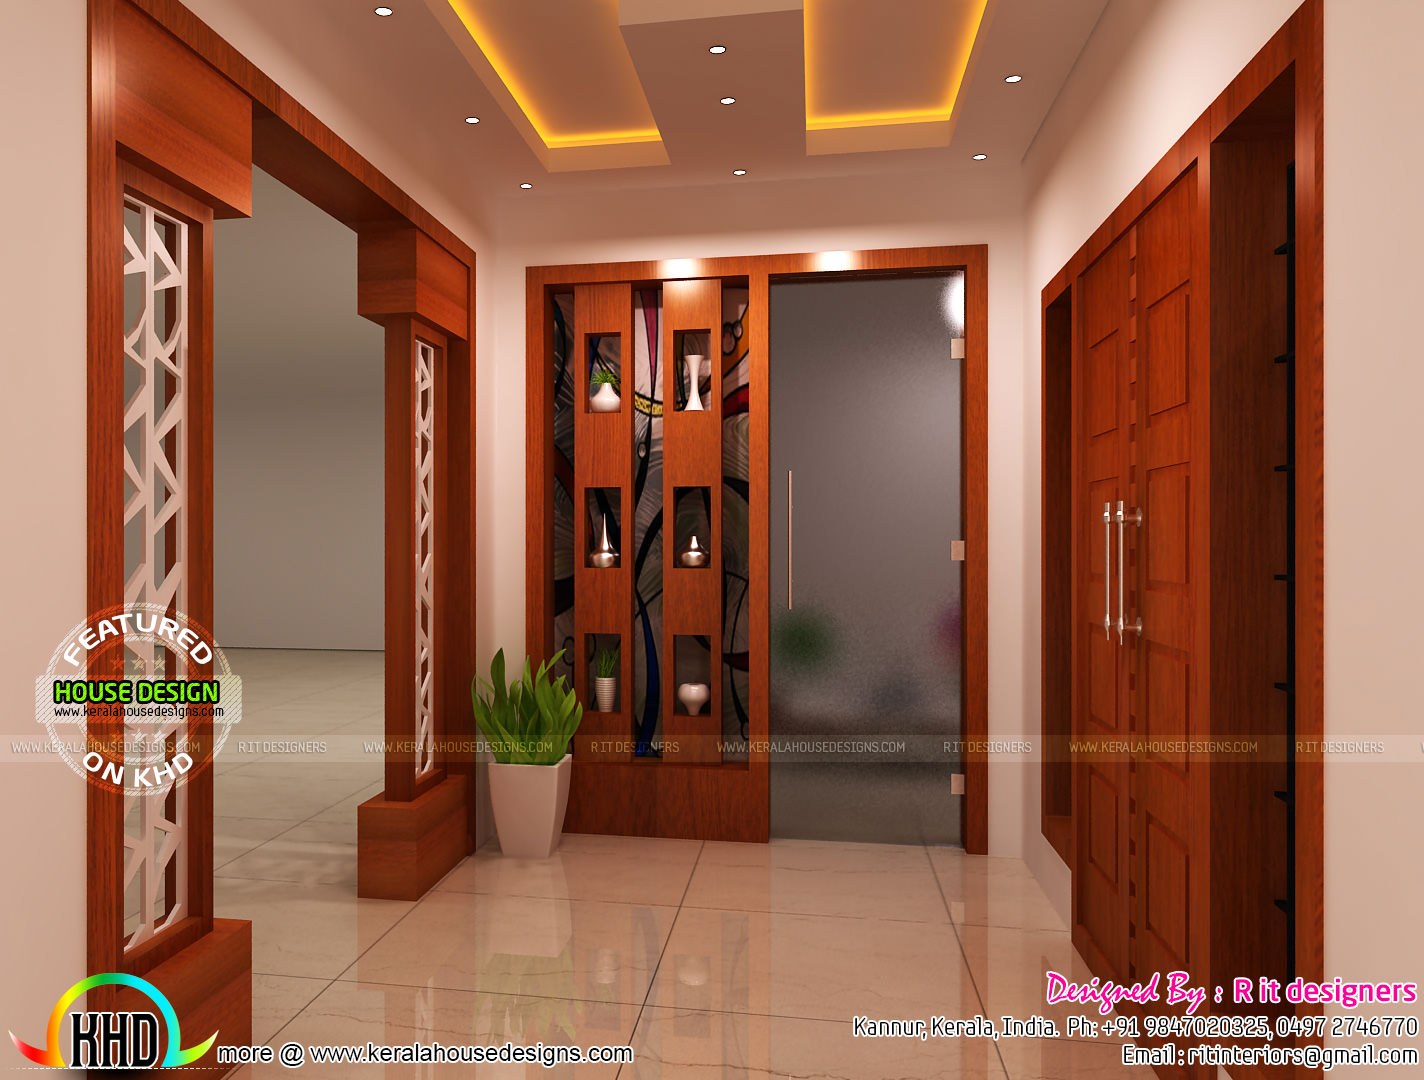 Modular kitchen living bathroom and foyer kerala home for Interior designs photos for home